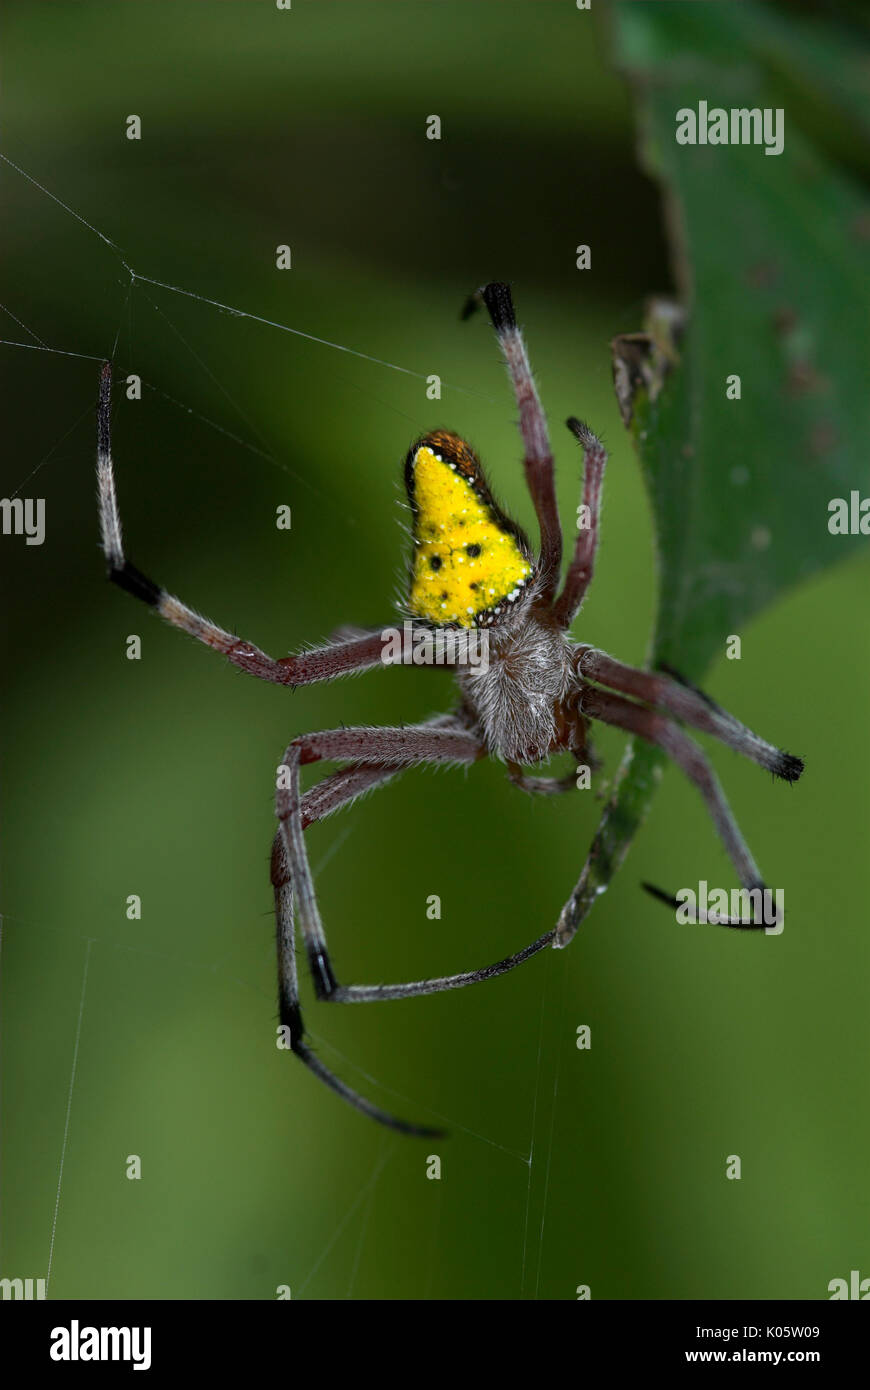 Cribellate Spider, Family Uloboridae, Manu Peru, on web, night, jungle, amazon, yellow triangle abdomen, on form of orb web - Stock Image